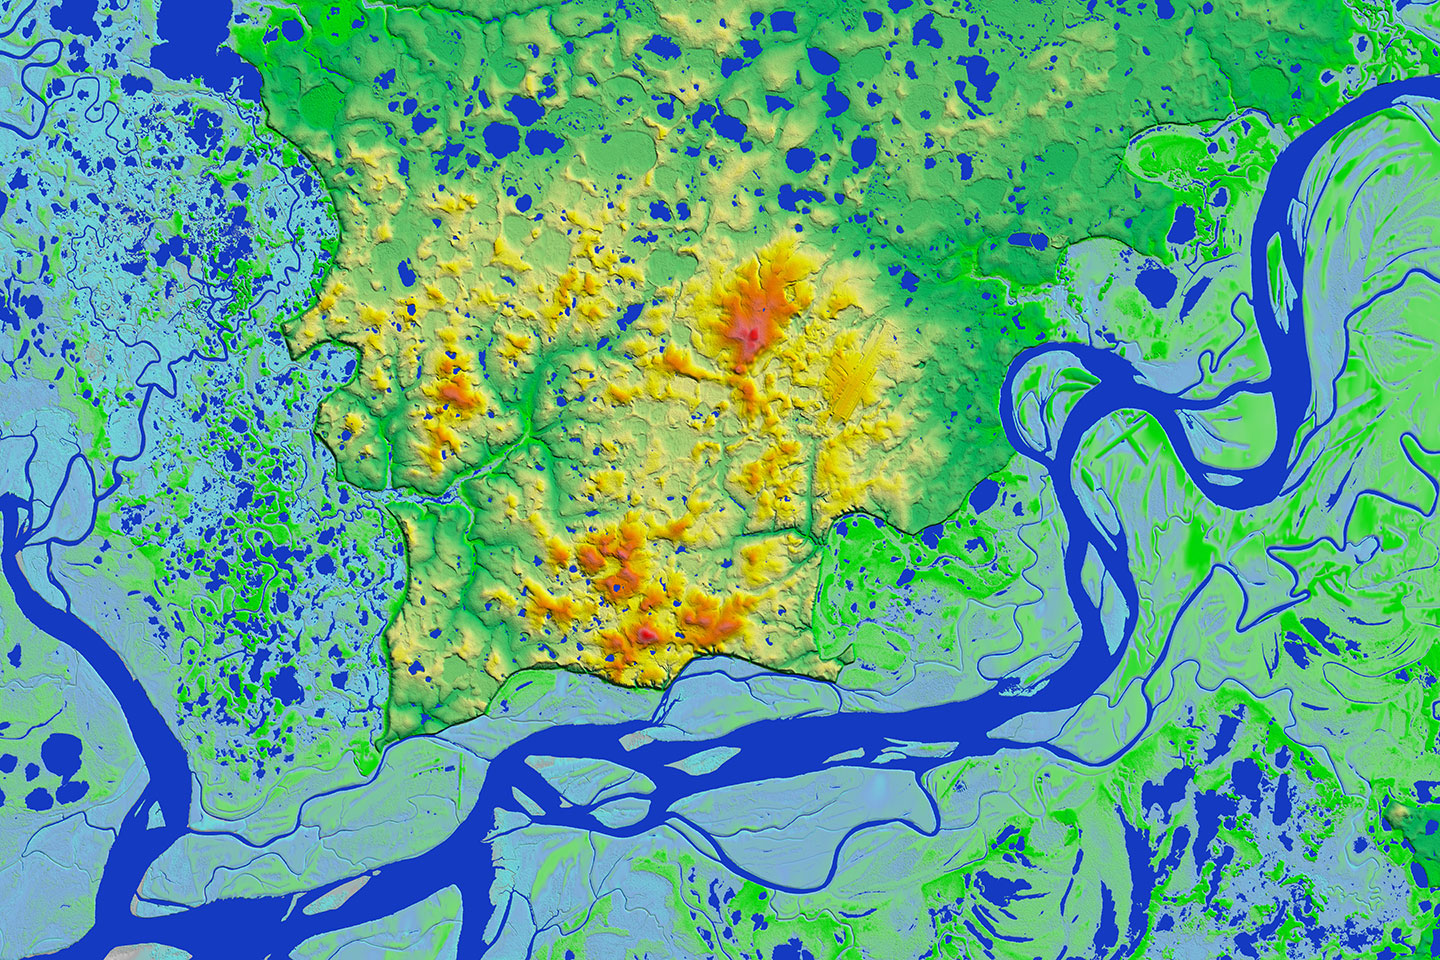 In addition to mapping elevations, IFSAR is especially effective because it efficiently maps hydrographic features as shown here for the Kuskokwim River in Bethel Borough.